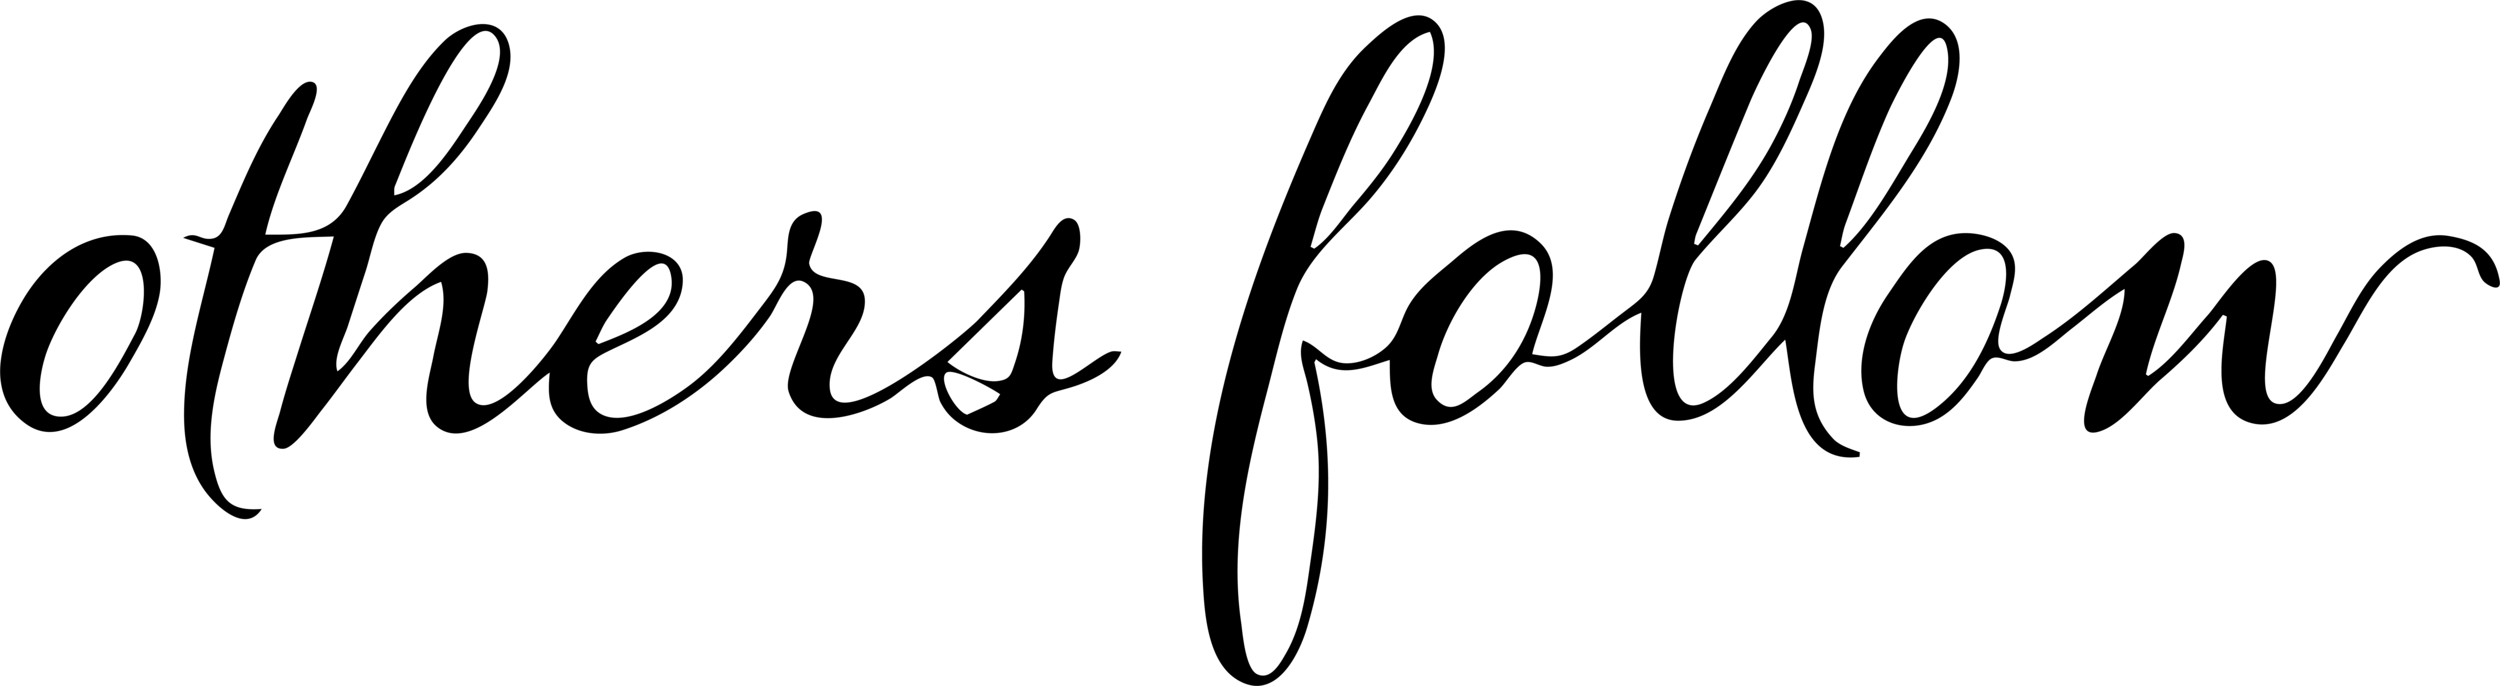 OthersFollow_Logo (1).png